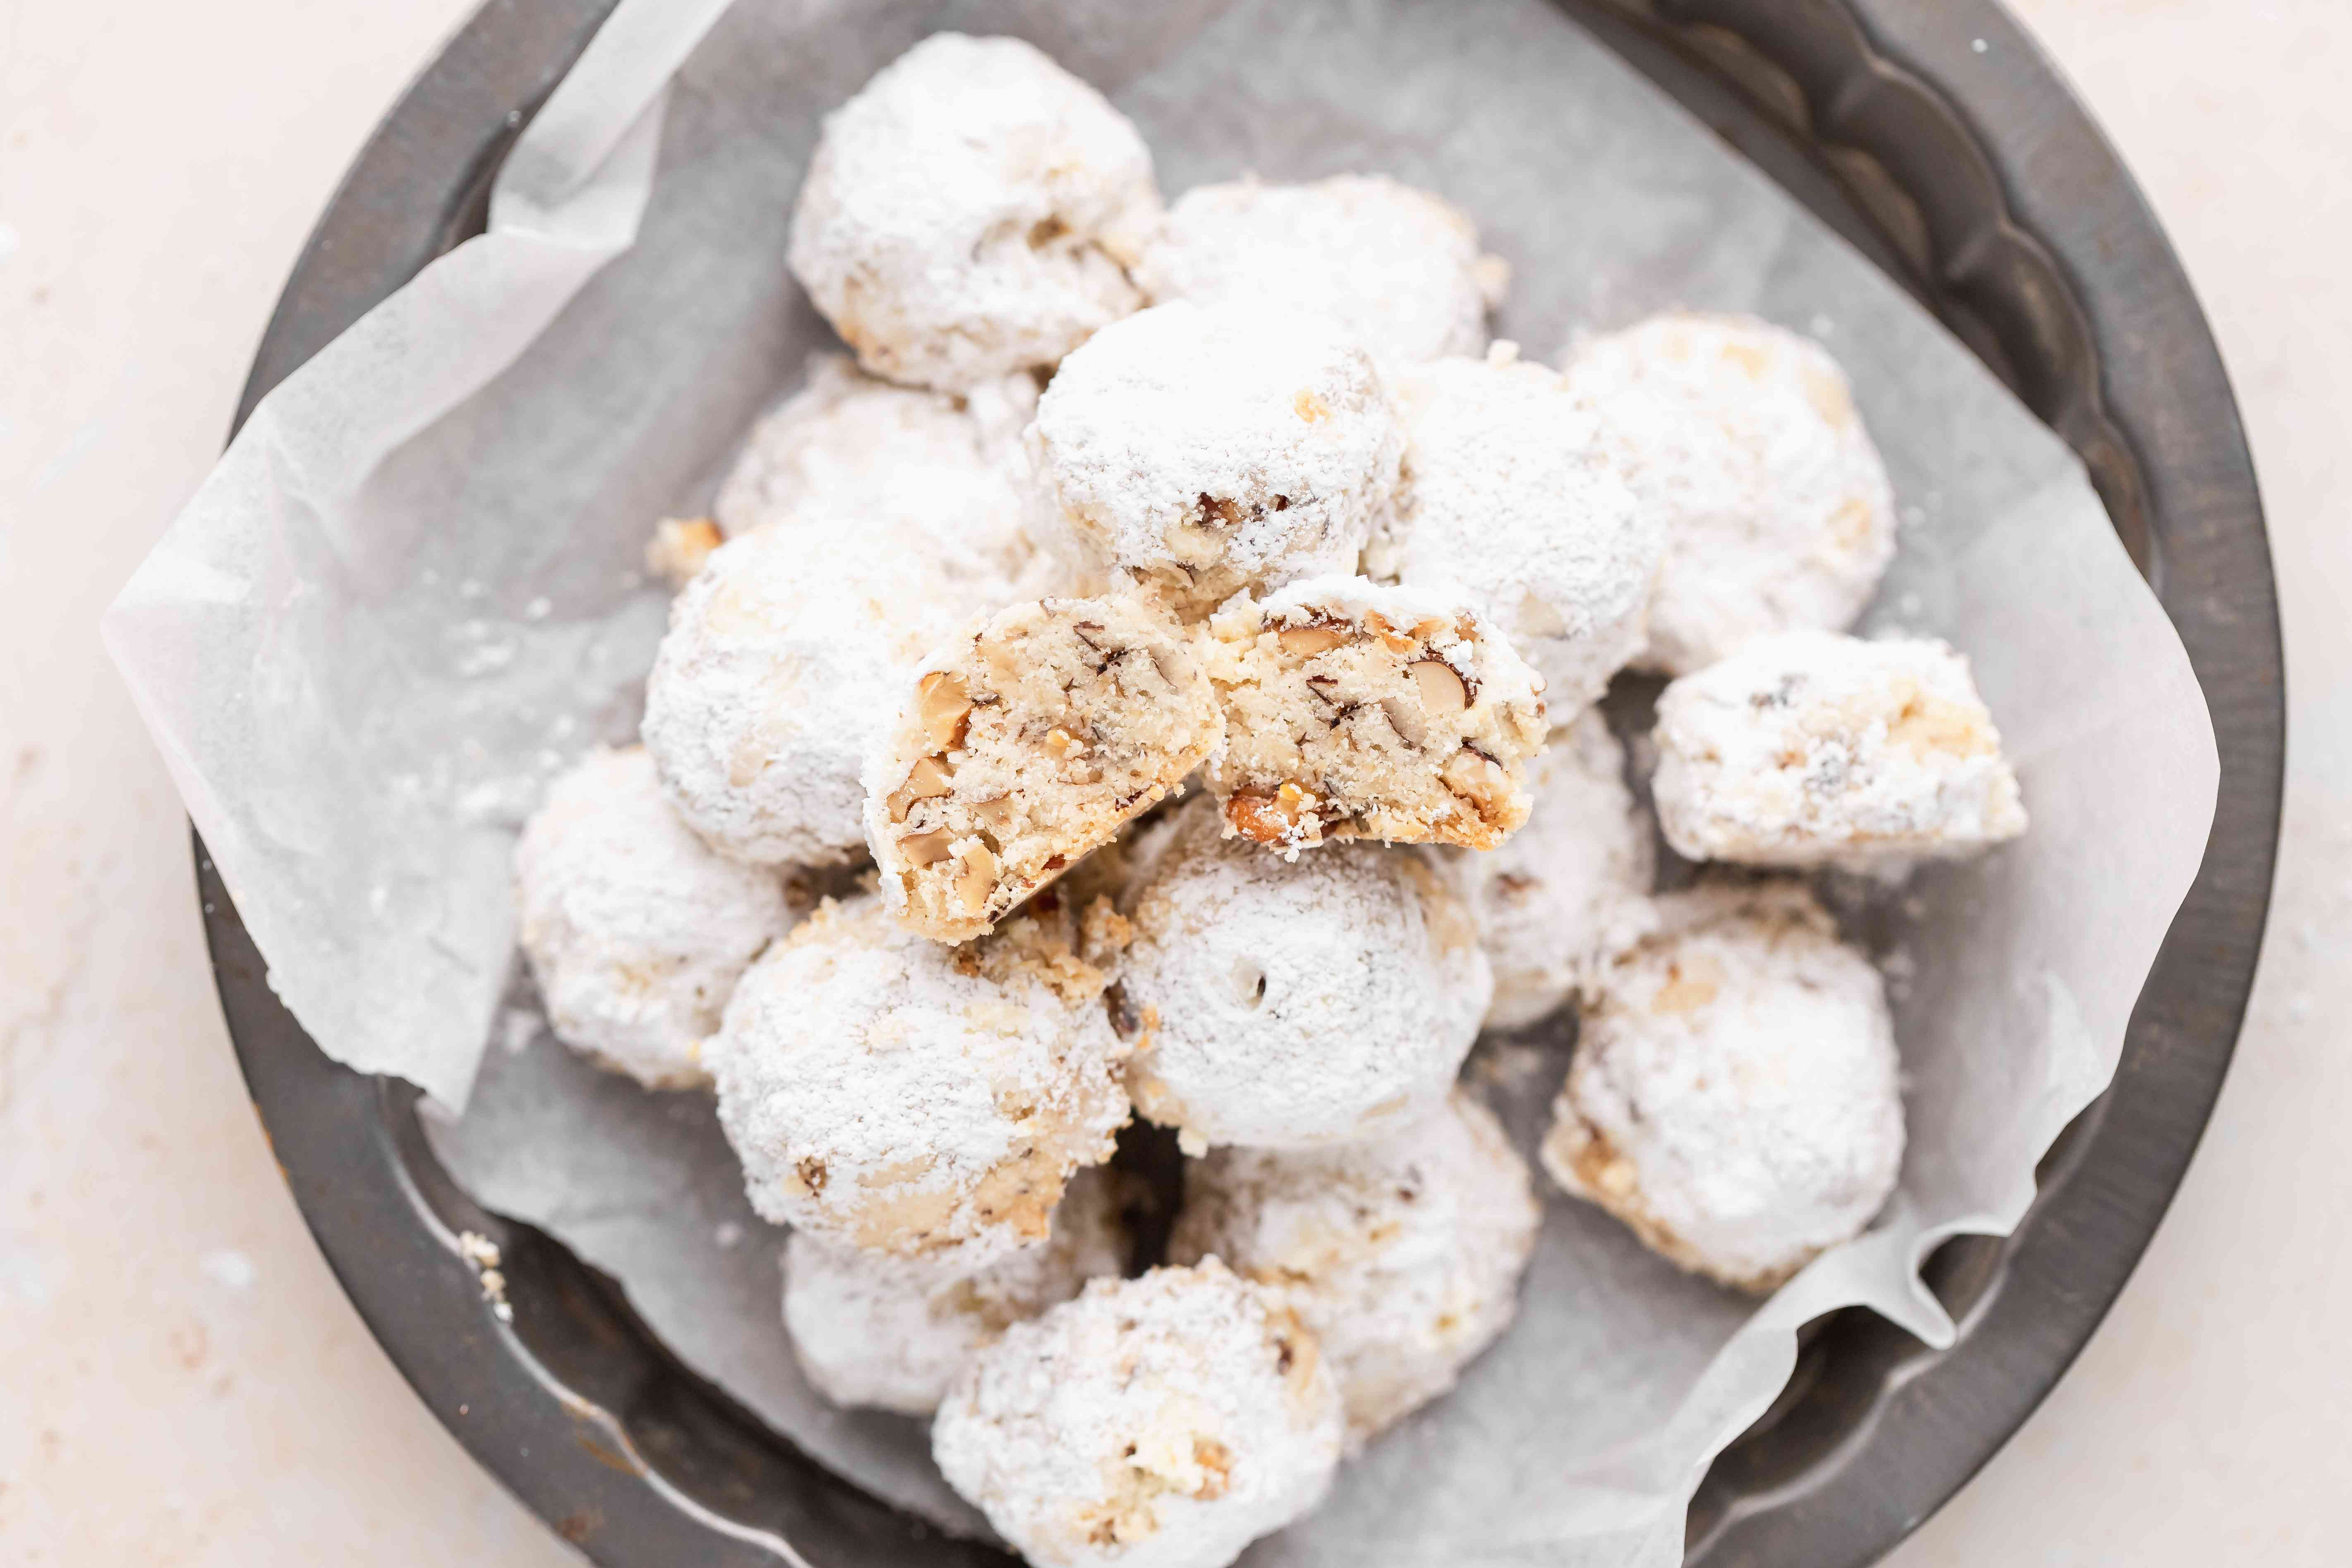 Overhead view of powdered sugar cookies piled on a plate with the top one cut in half to show the interior.